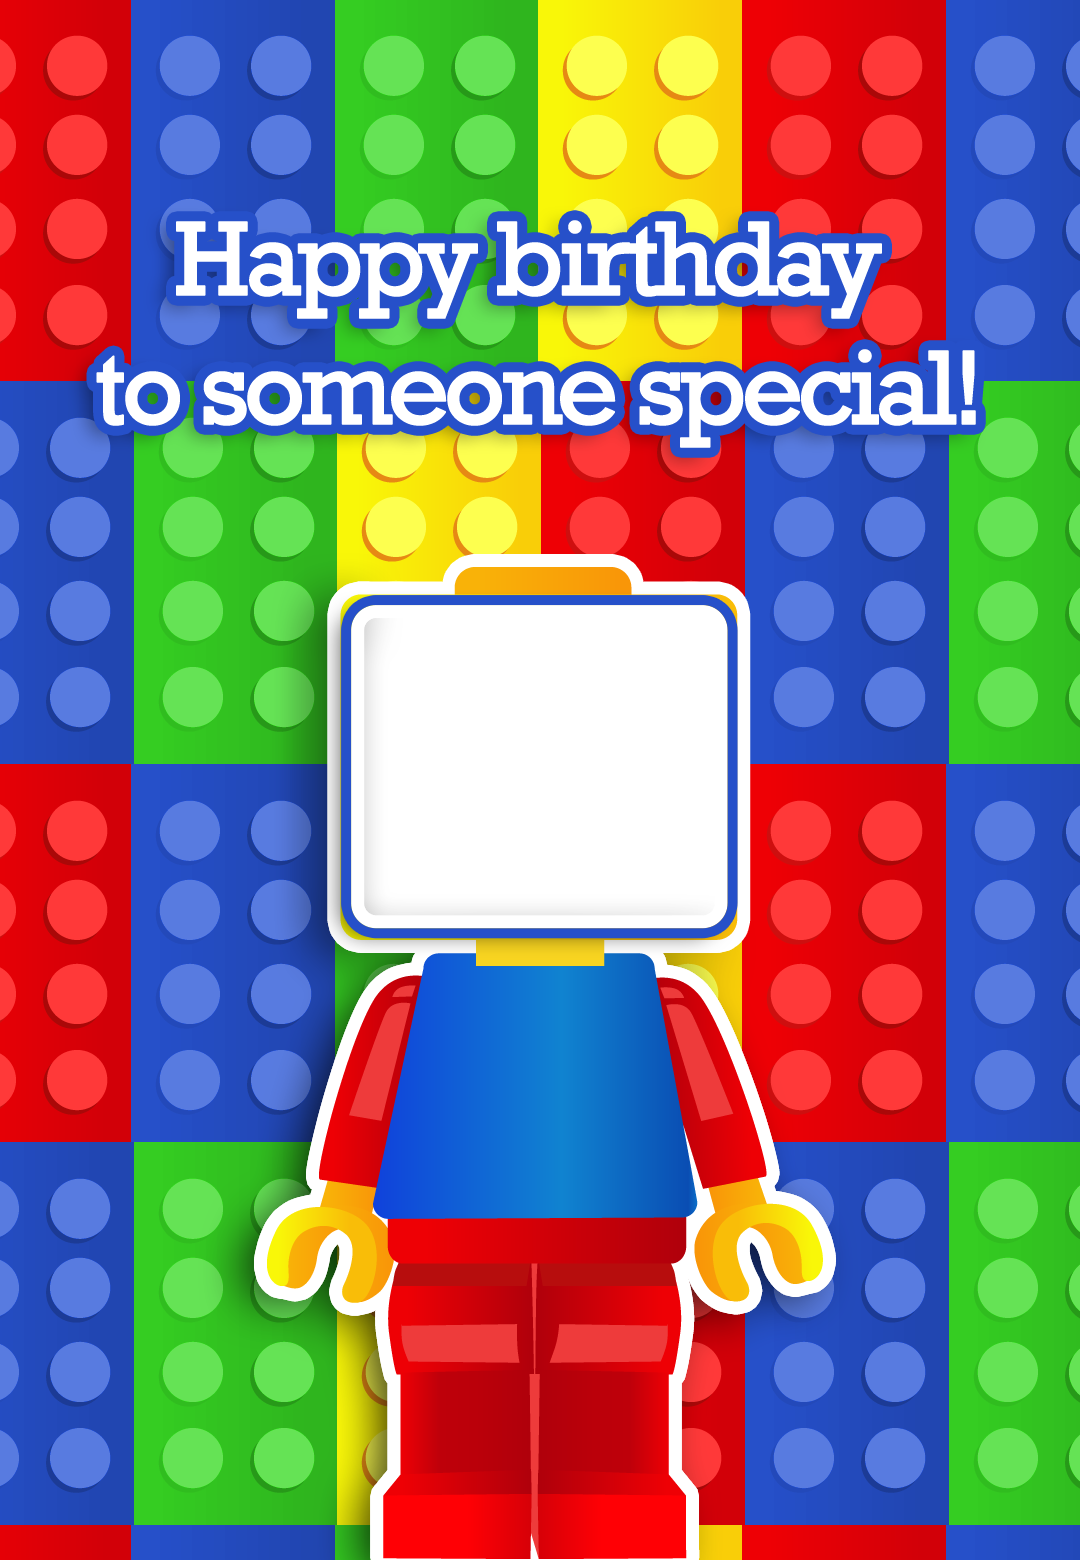 Lego clipart birthday card Free Card with